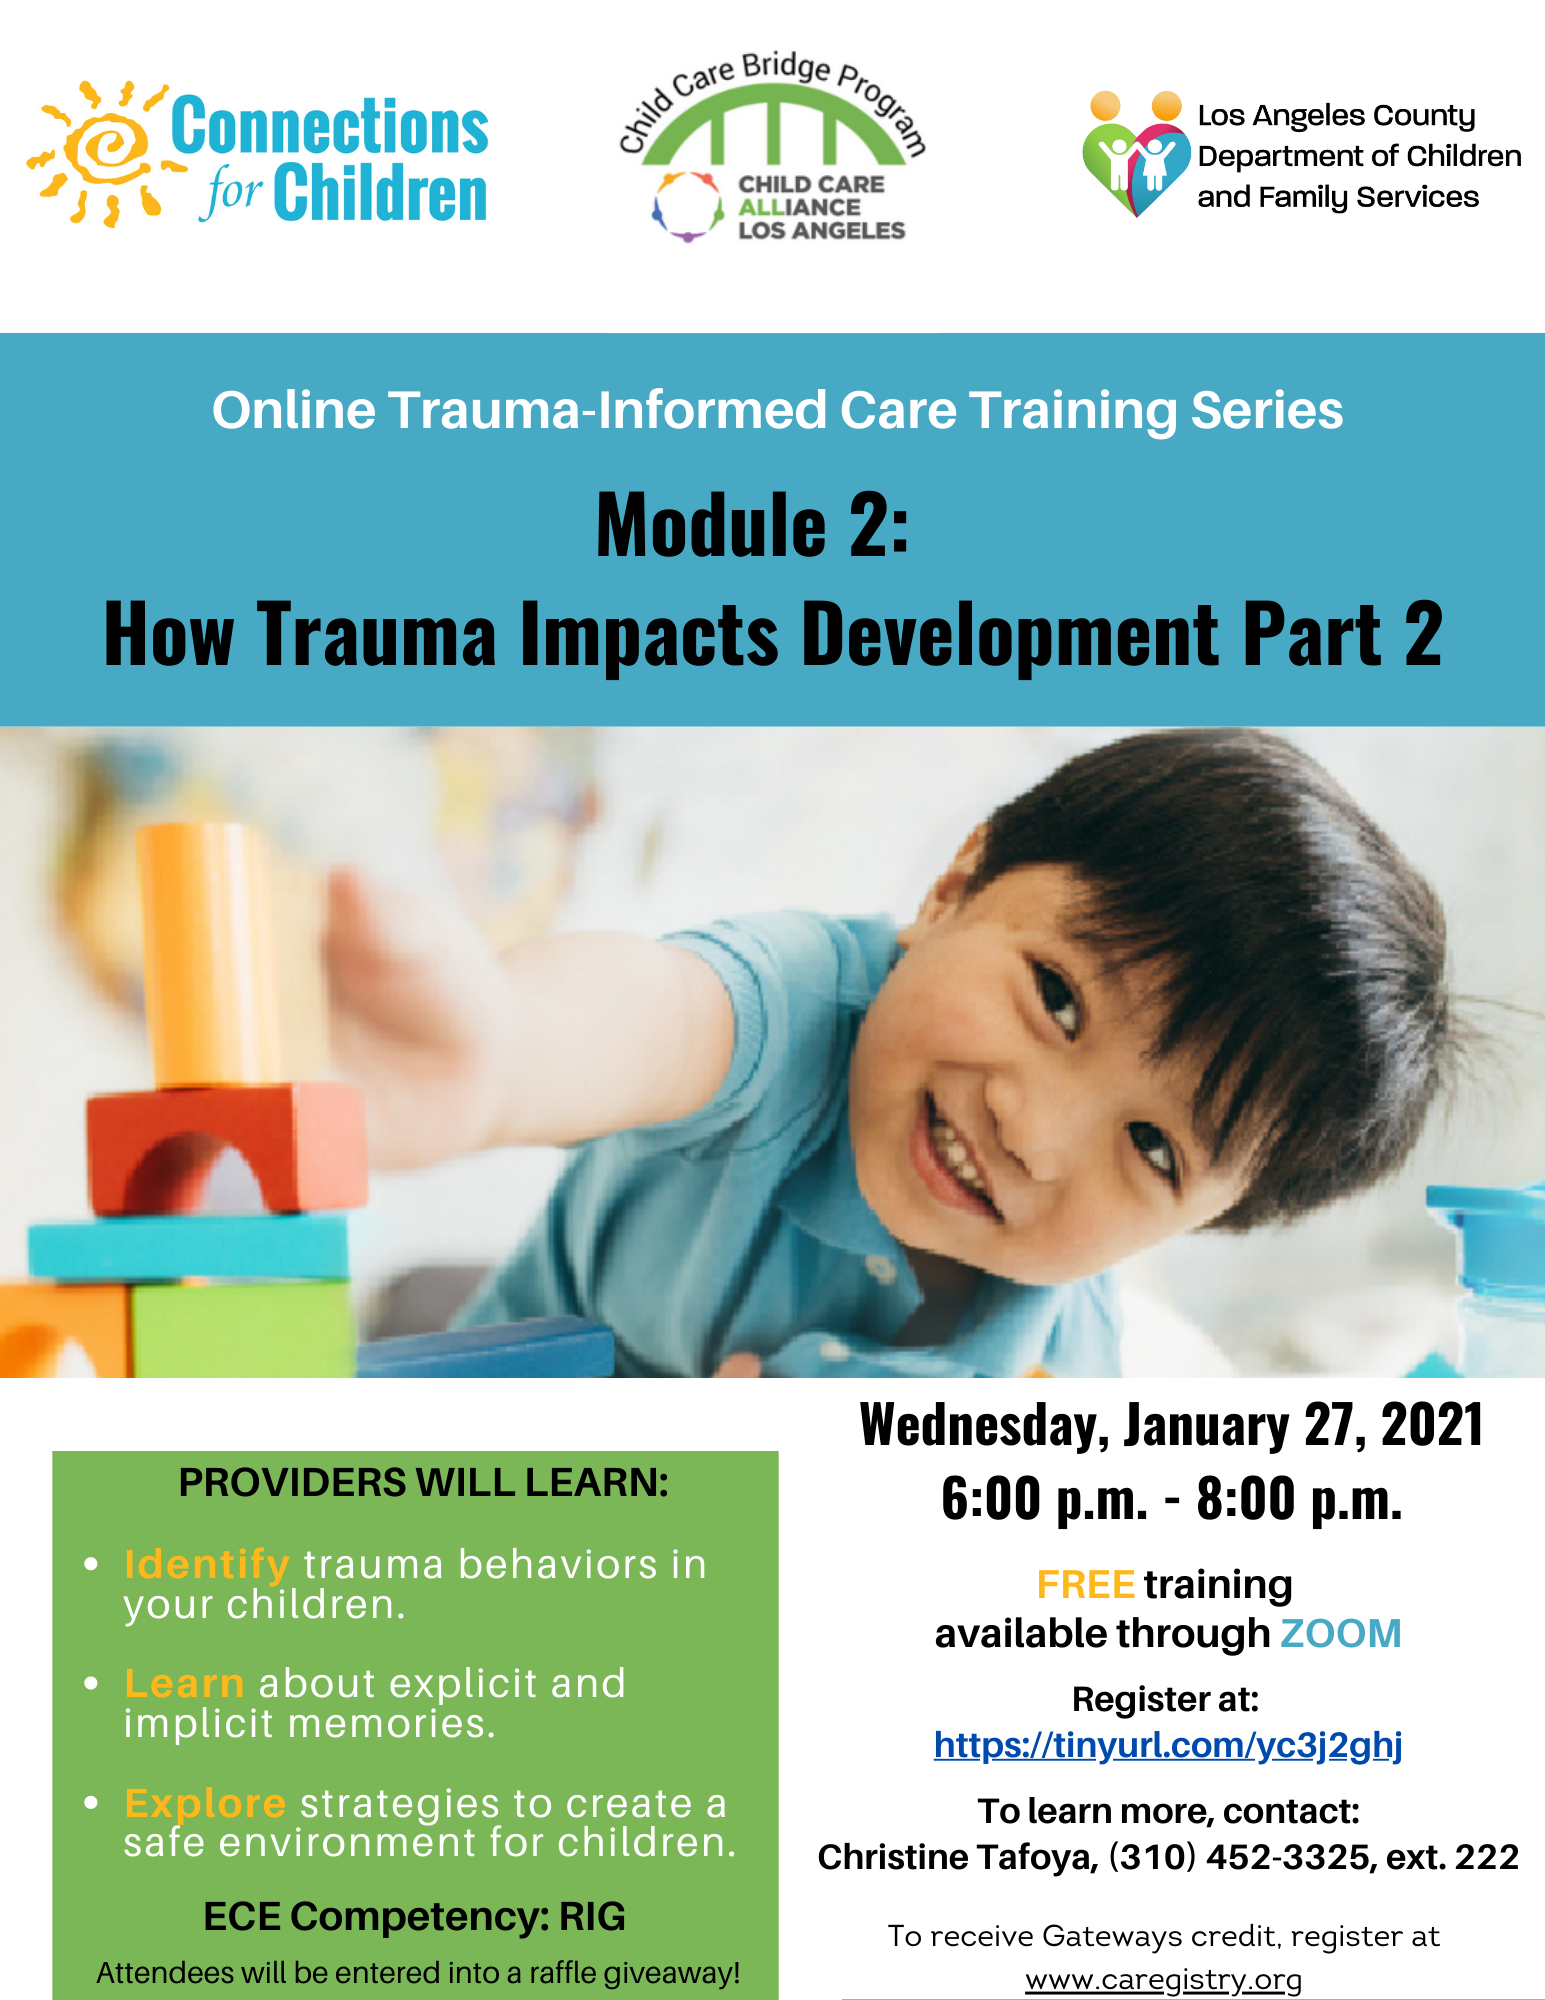 How Trauma Impacts Development, Part 2